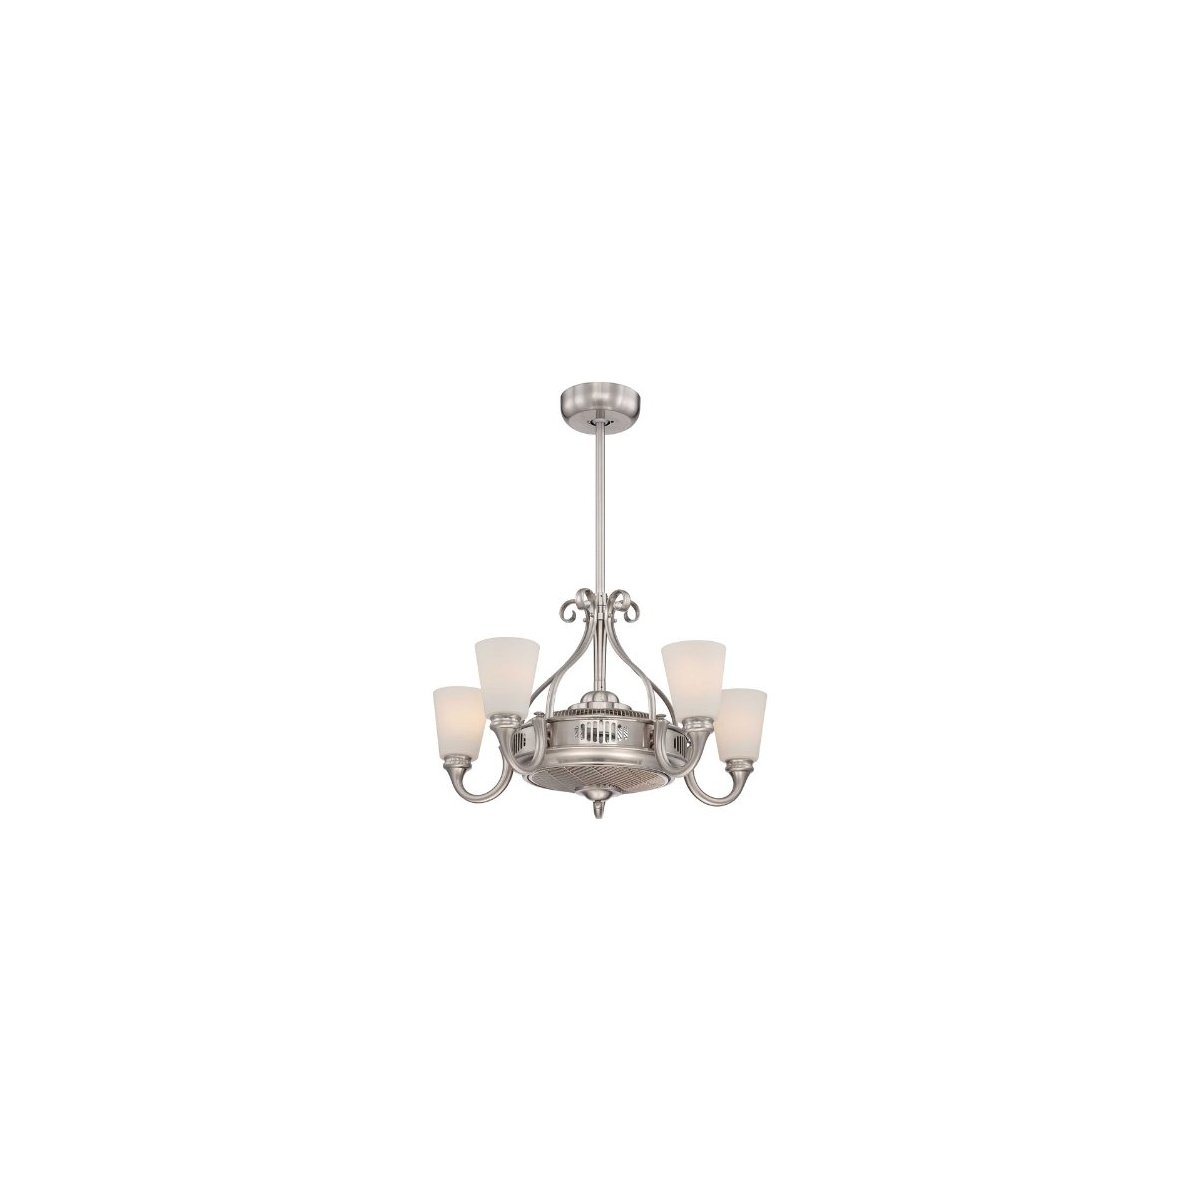 Savoy House Borea 5-Light Air-Ionizing Fan d'Lier in Satin Nickel 32-326-FD-SN by Savoy House